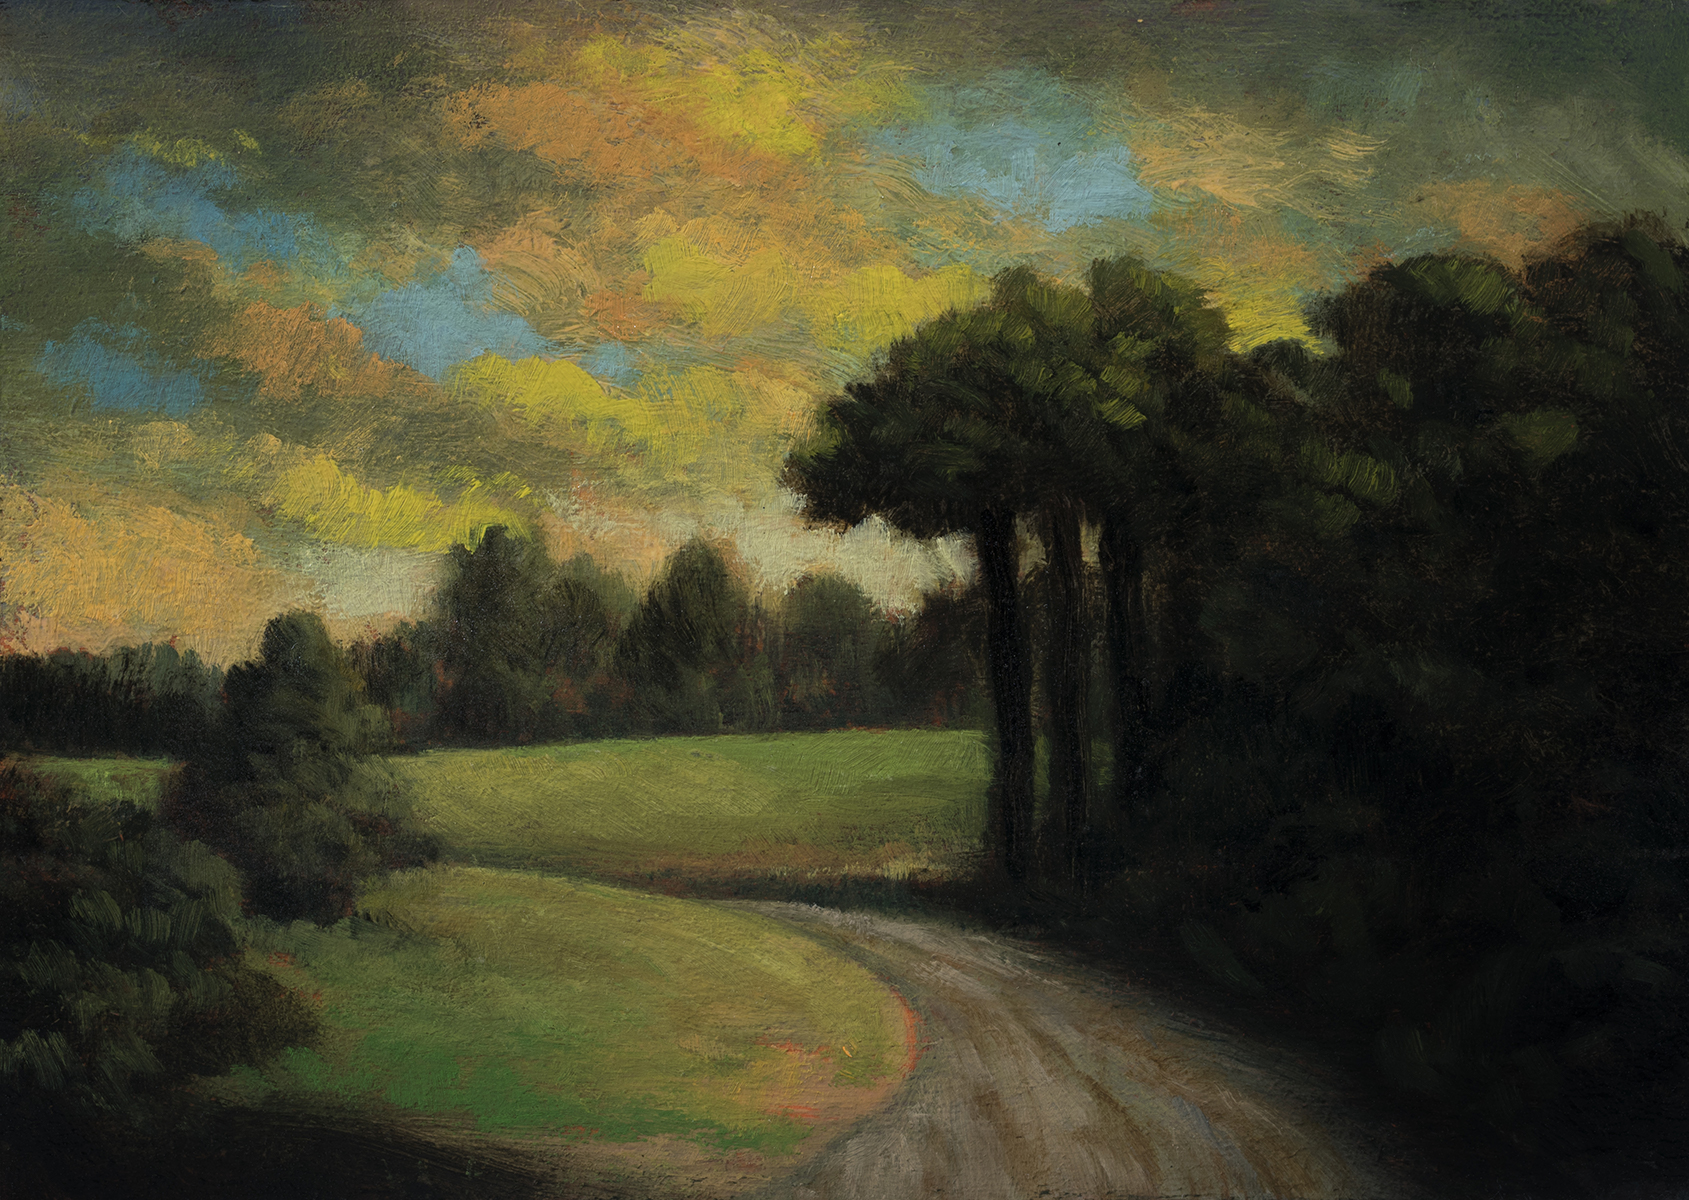 Storm Above the Meadow by M Francis McCarthy - 5x7 Oil on Wood Panel